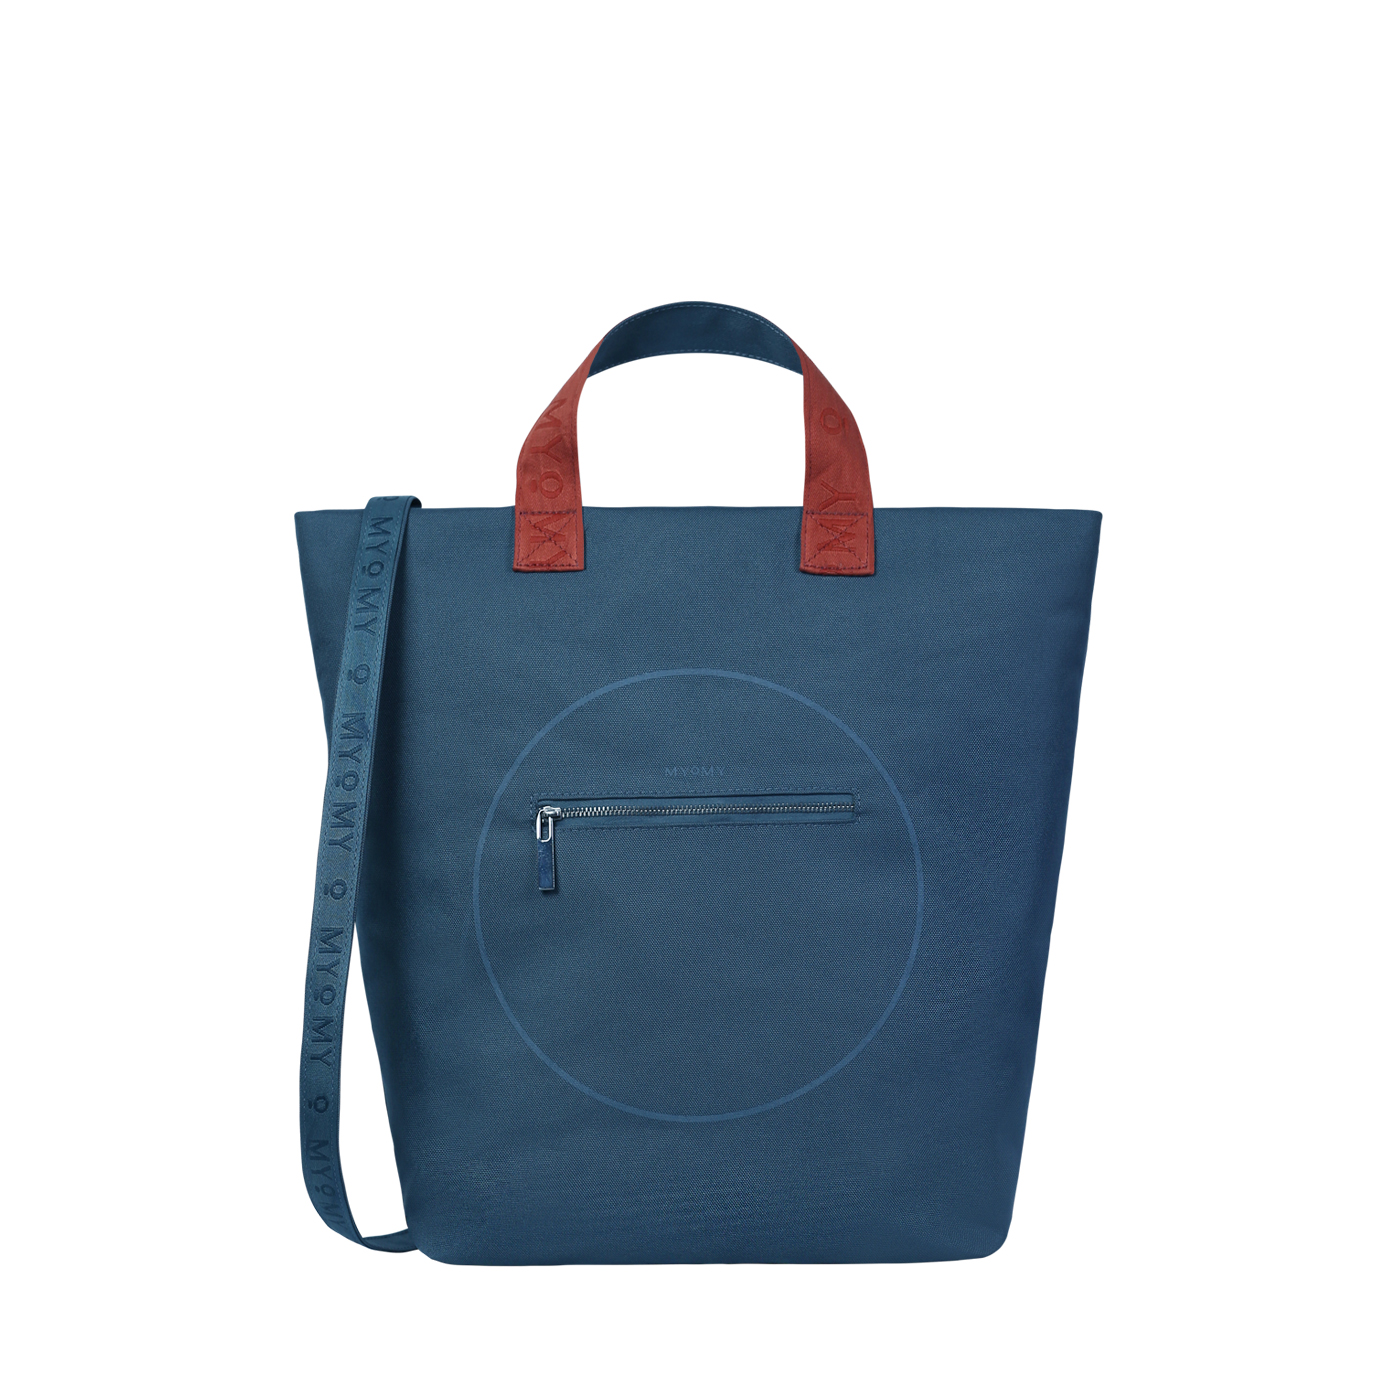 MY CIRCLE BAG Shopper – RPET Blue